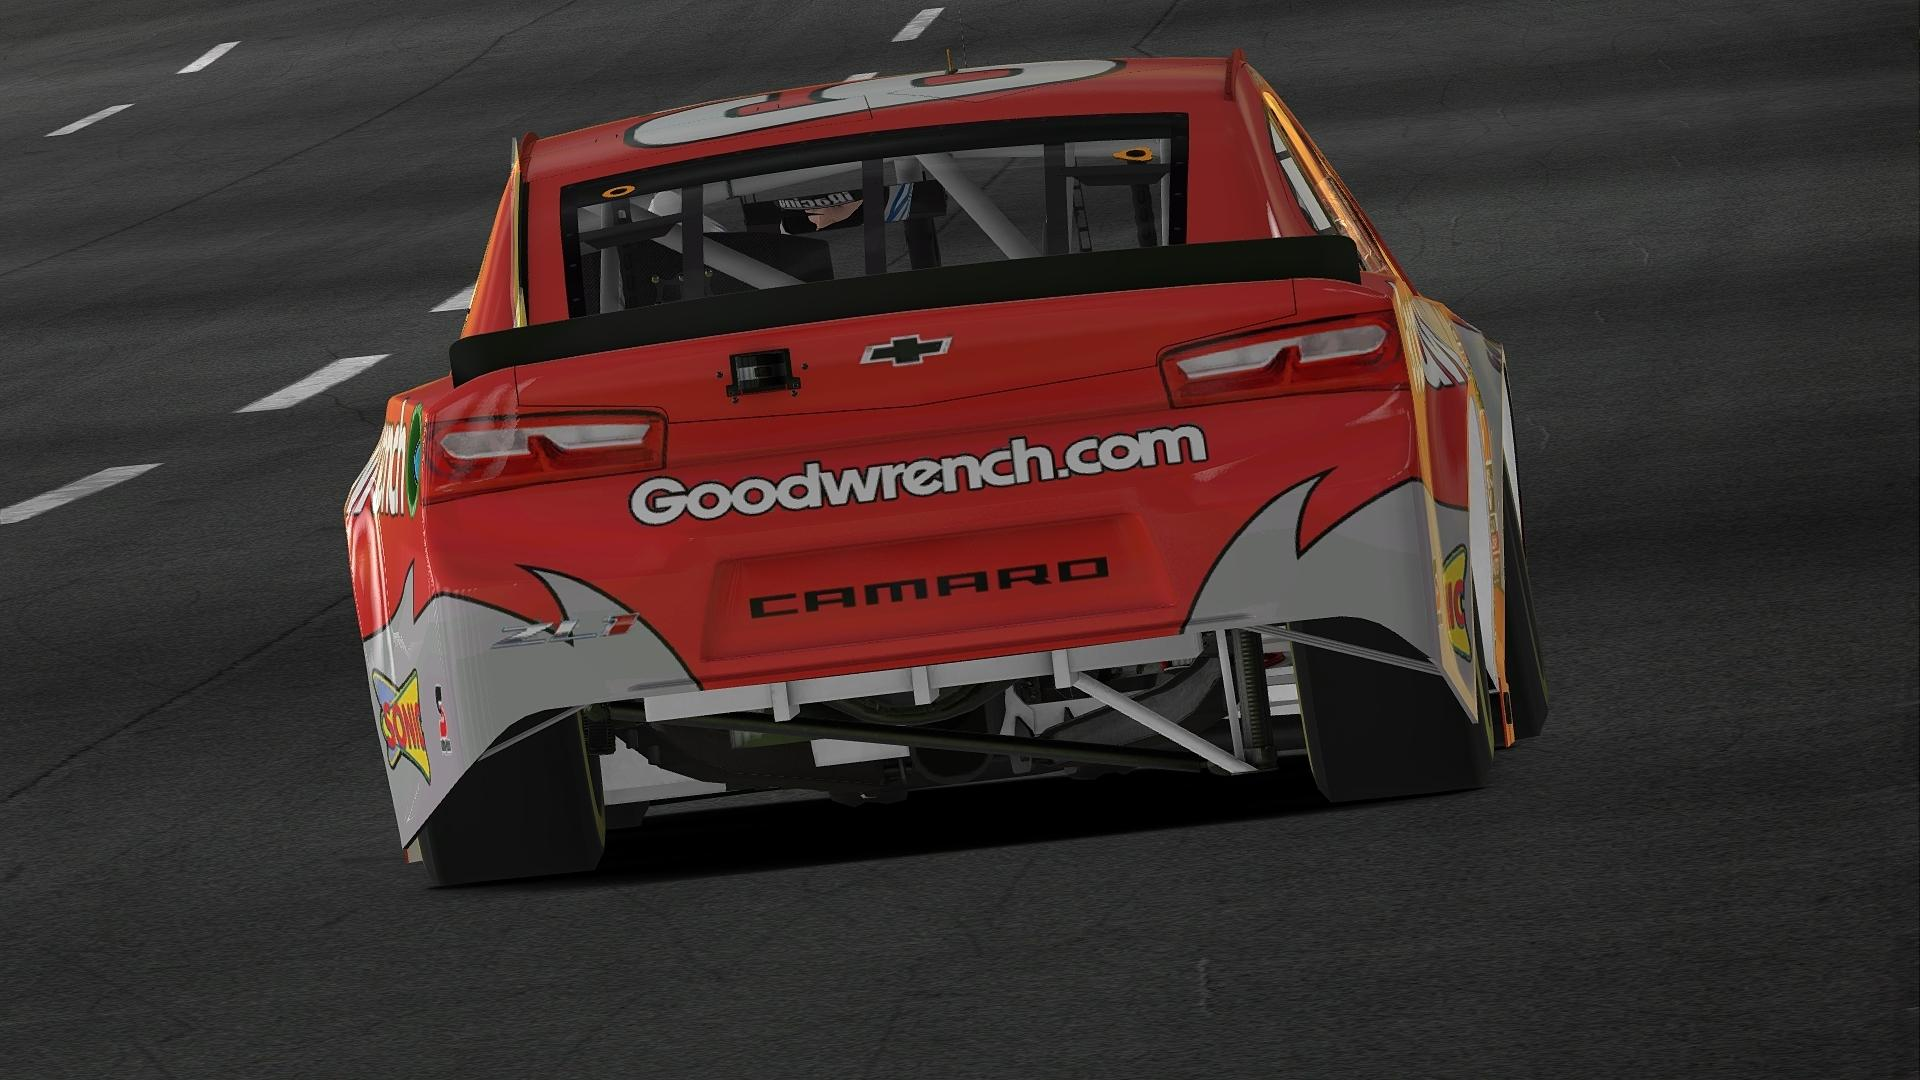 Preview of Kevin Harvick 2003 Goodwrench (Budweiser Shootout) by Ryan Bey